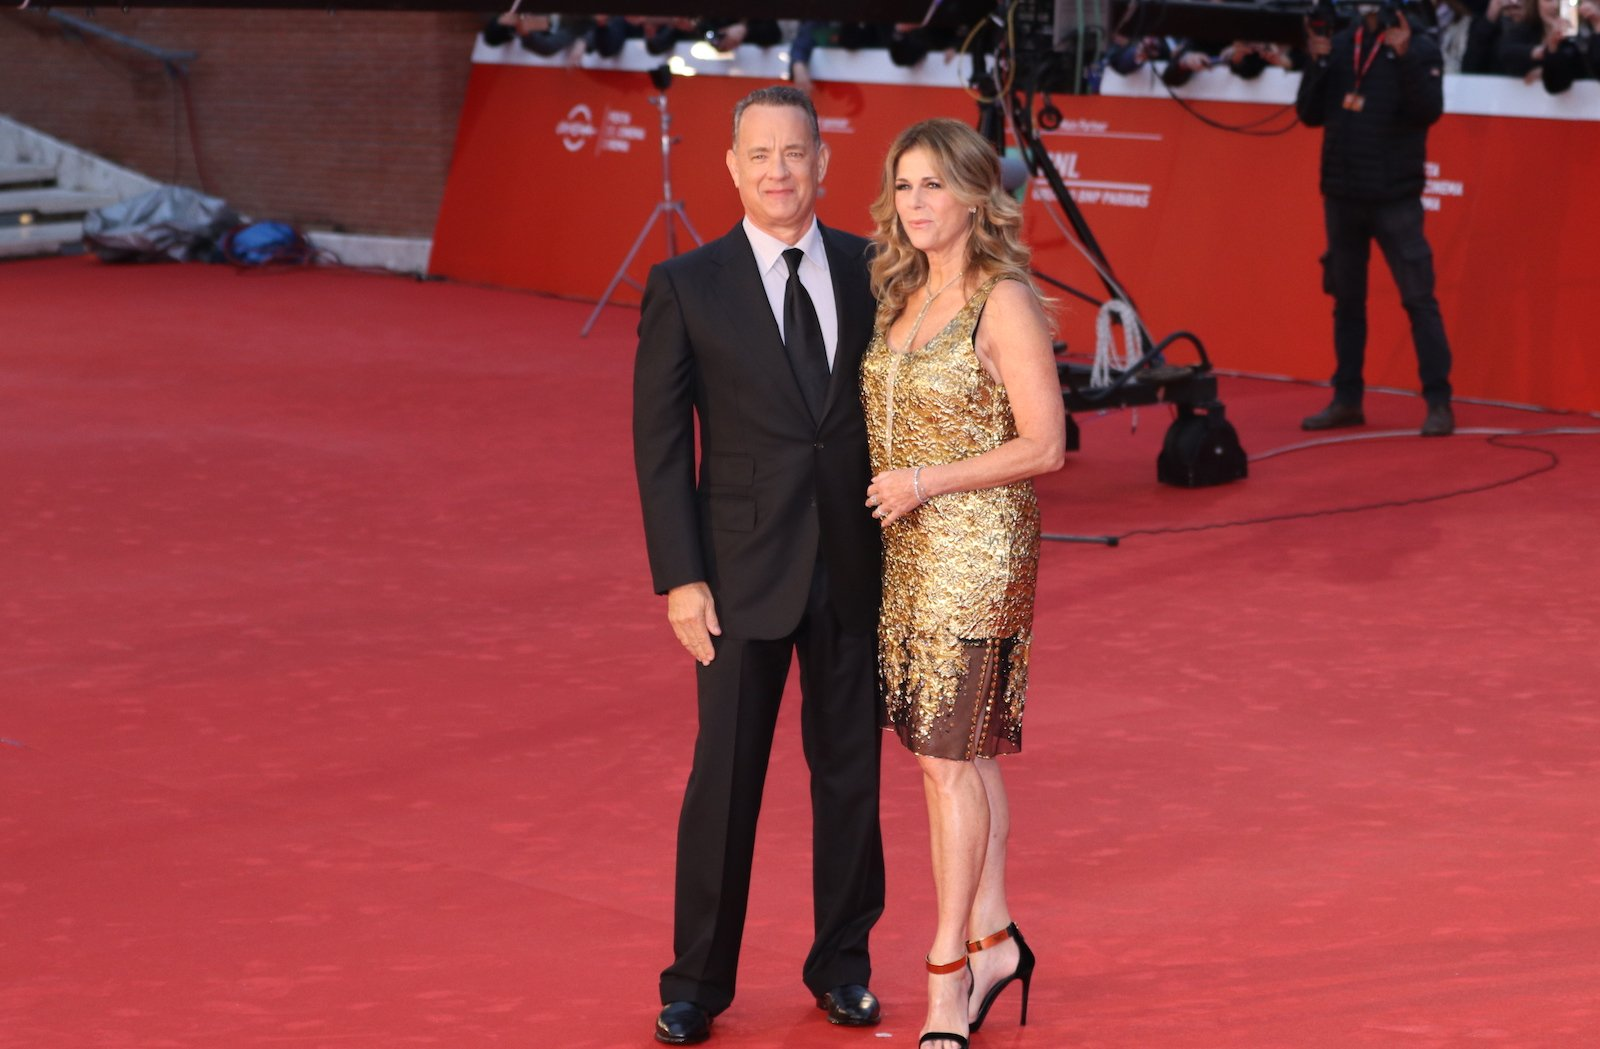 Roma 2016: Tom Hanks con sua moglie Rita Wilson sul red carpet